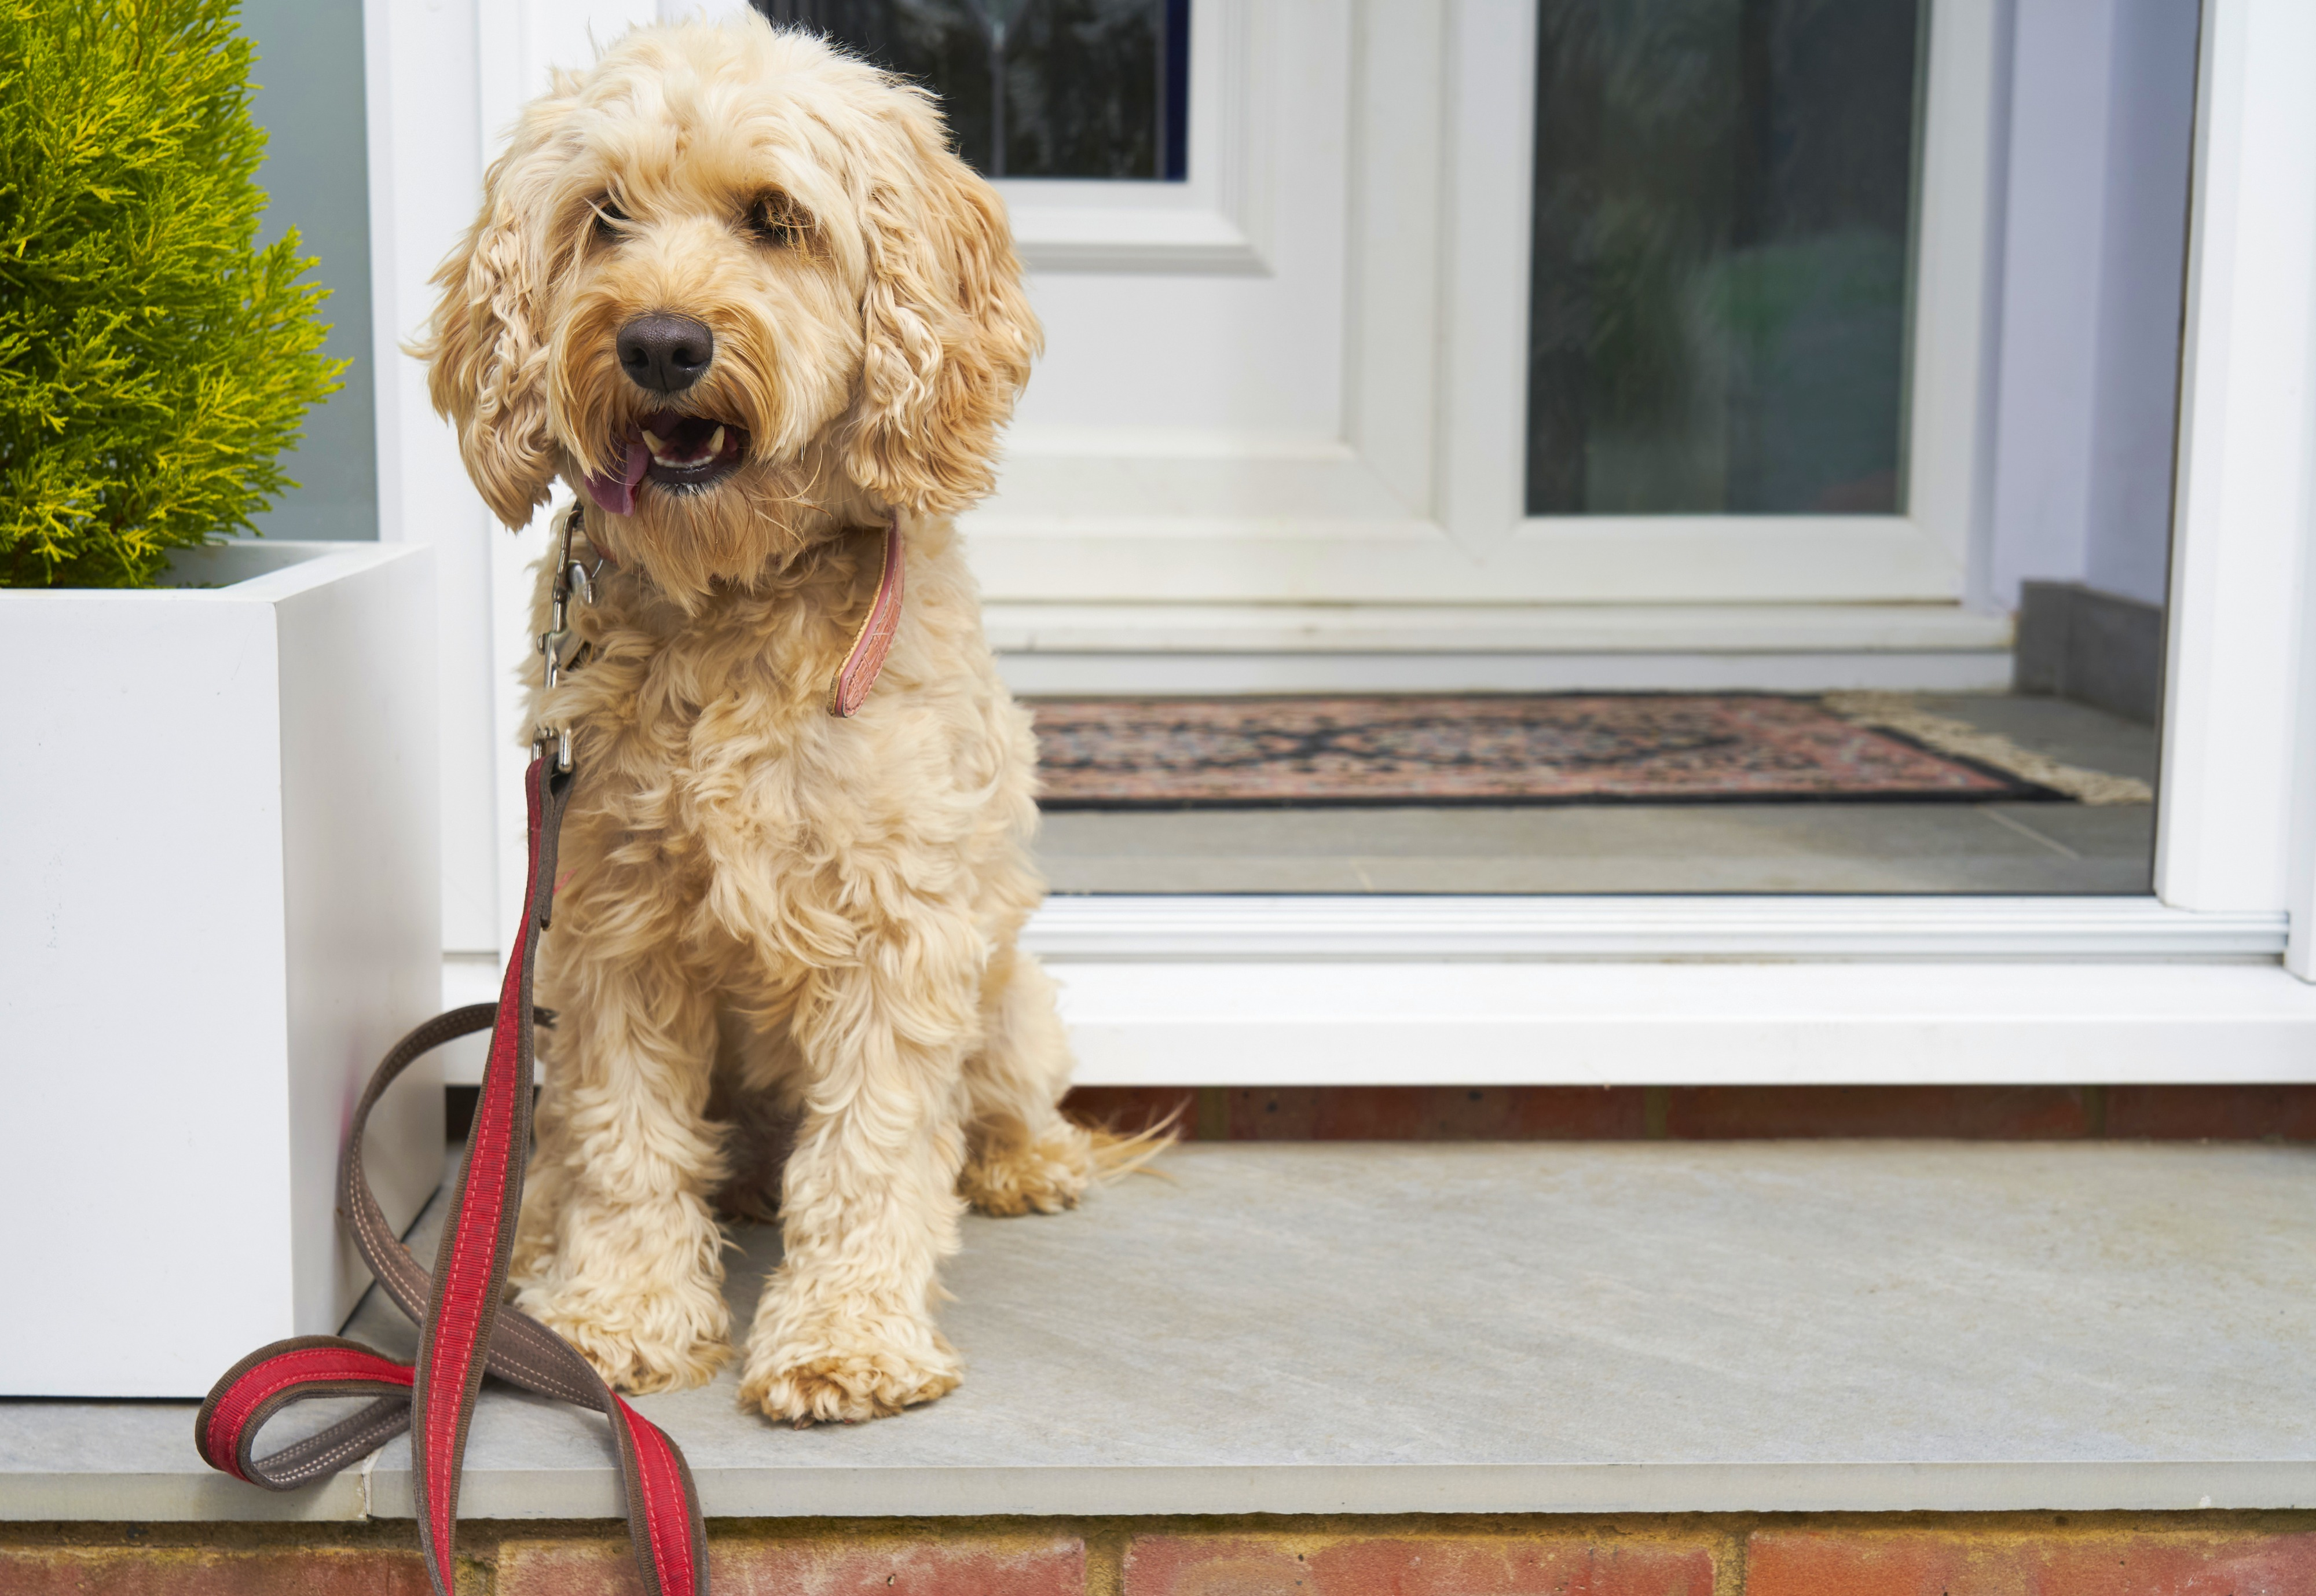 A light brown cockapoo sits on a front porch next to a white planter box with green shrub in it and has red leash hanging from collar.